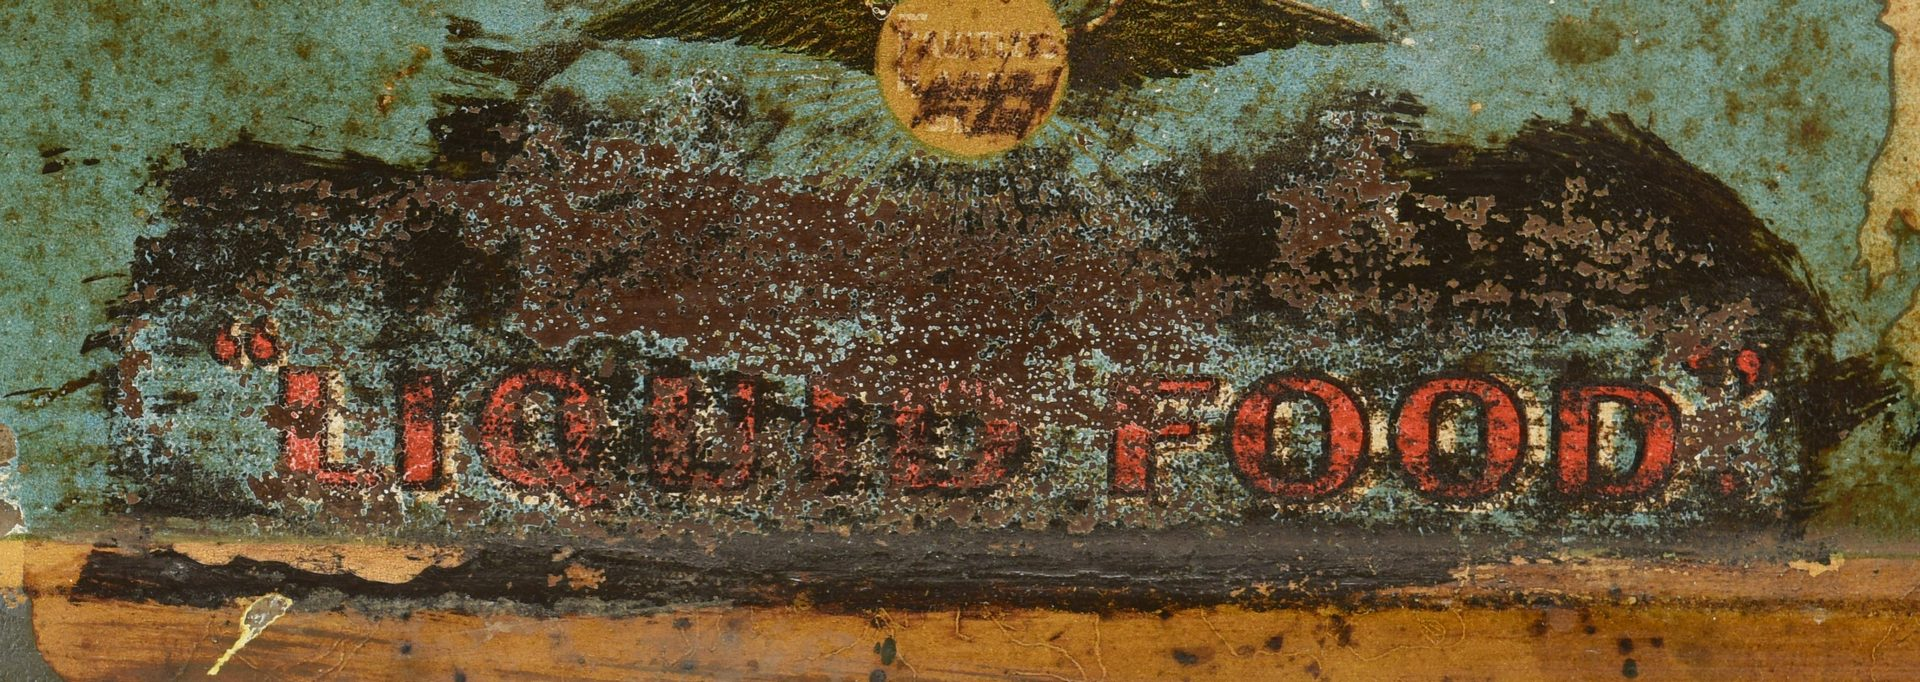 Lot 931: Chattanooga Brewing Co. Advertising Sign & Bottle